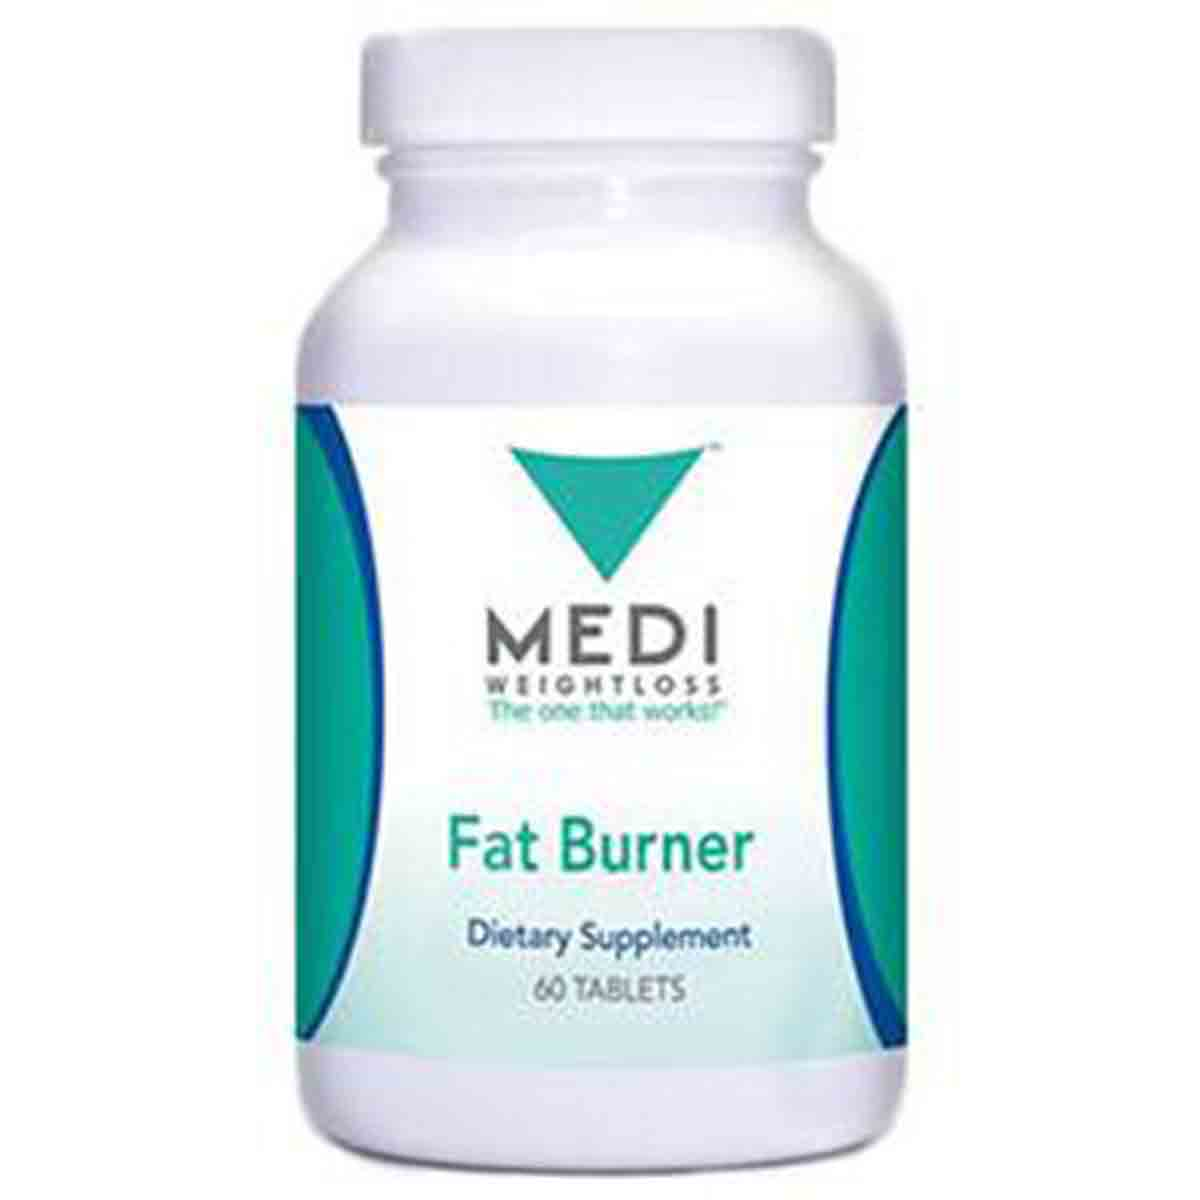 Medi-Weightloss Fat Burner